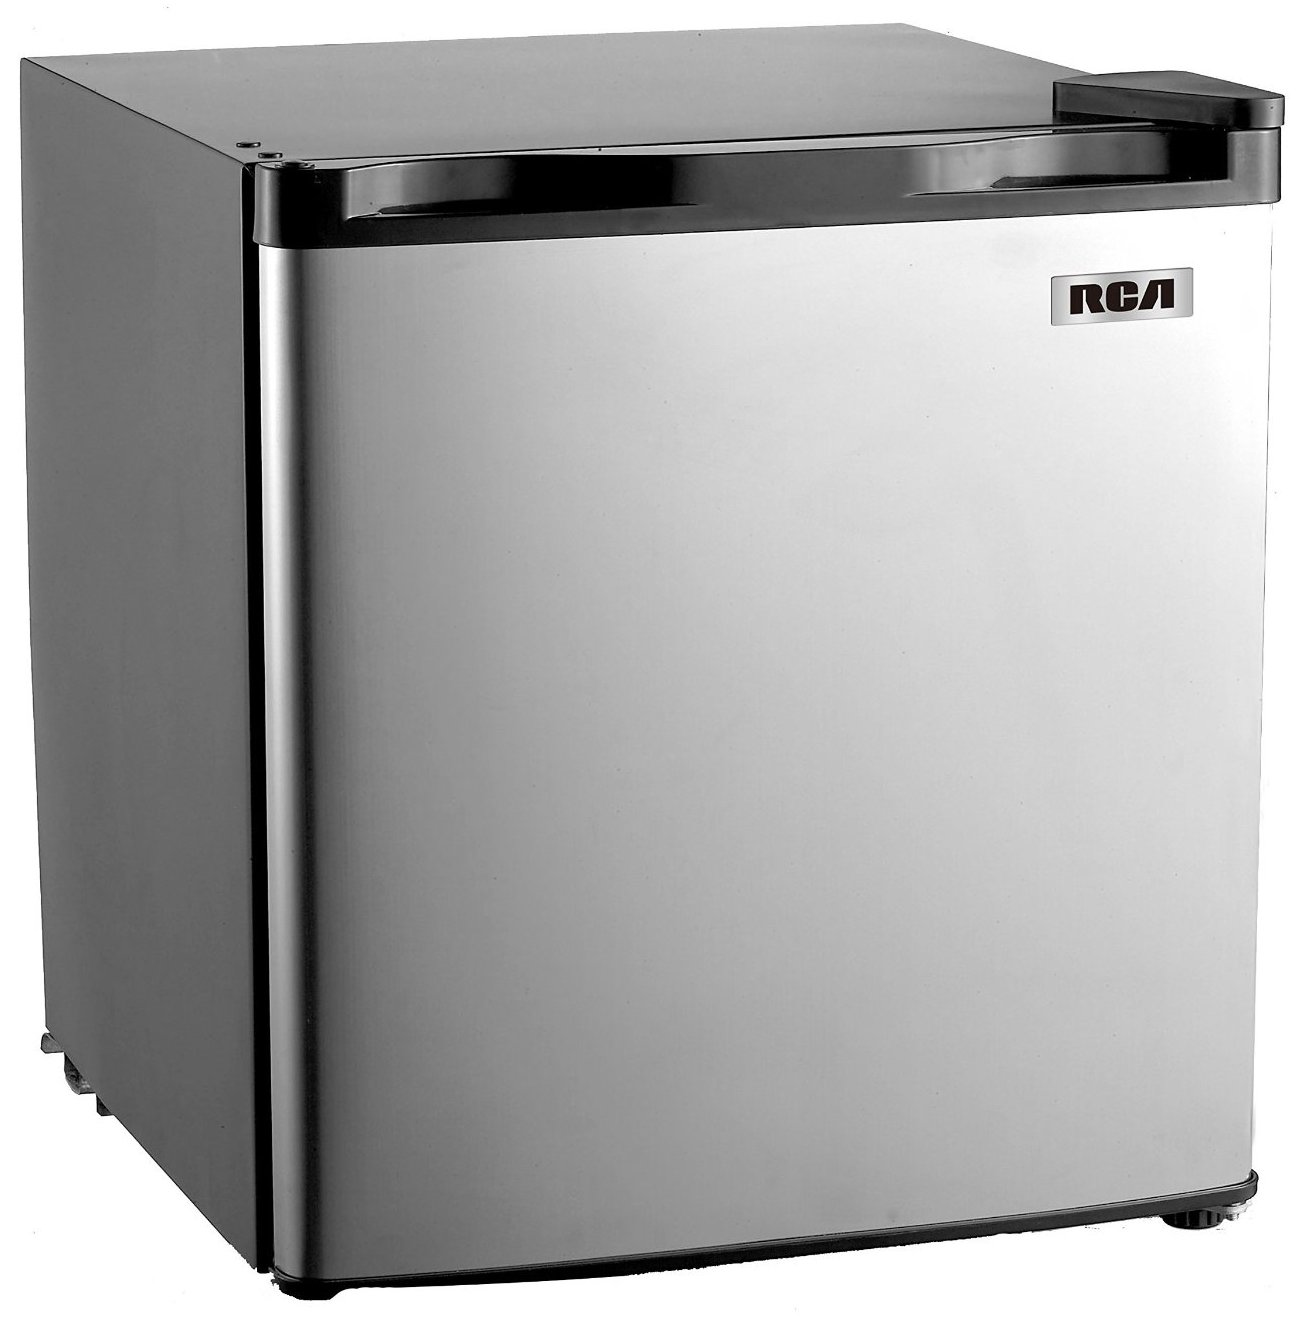 Home for the home marshall fridge - Rca Rfr180 1 6 1 7 Cubic Foot Fridge